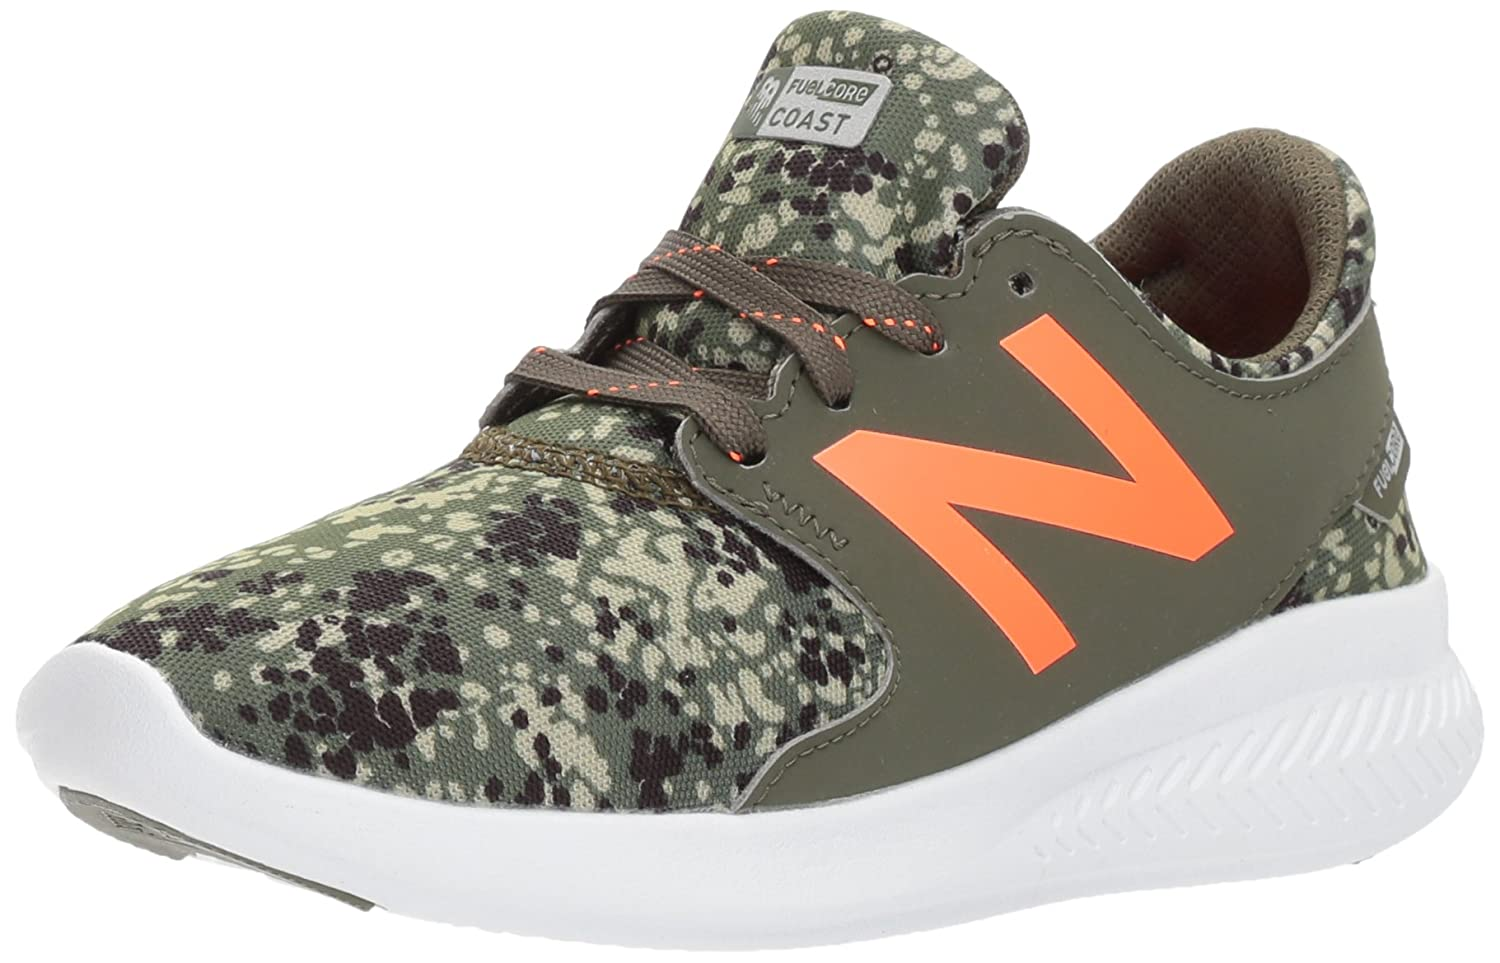 New Balance Coast v3 Running Shoe -